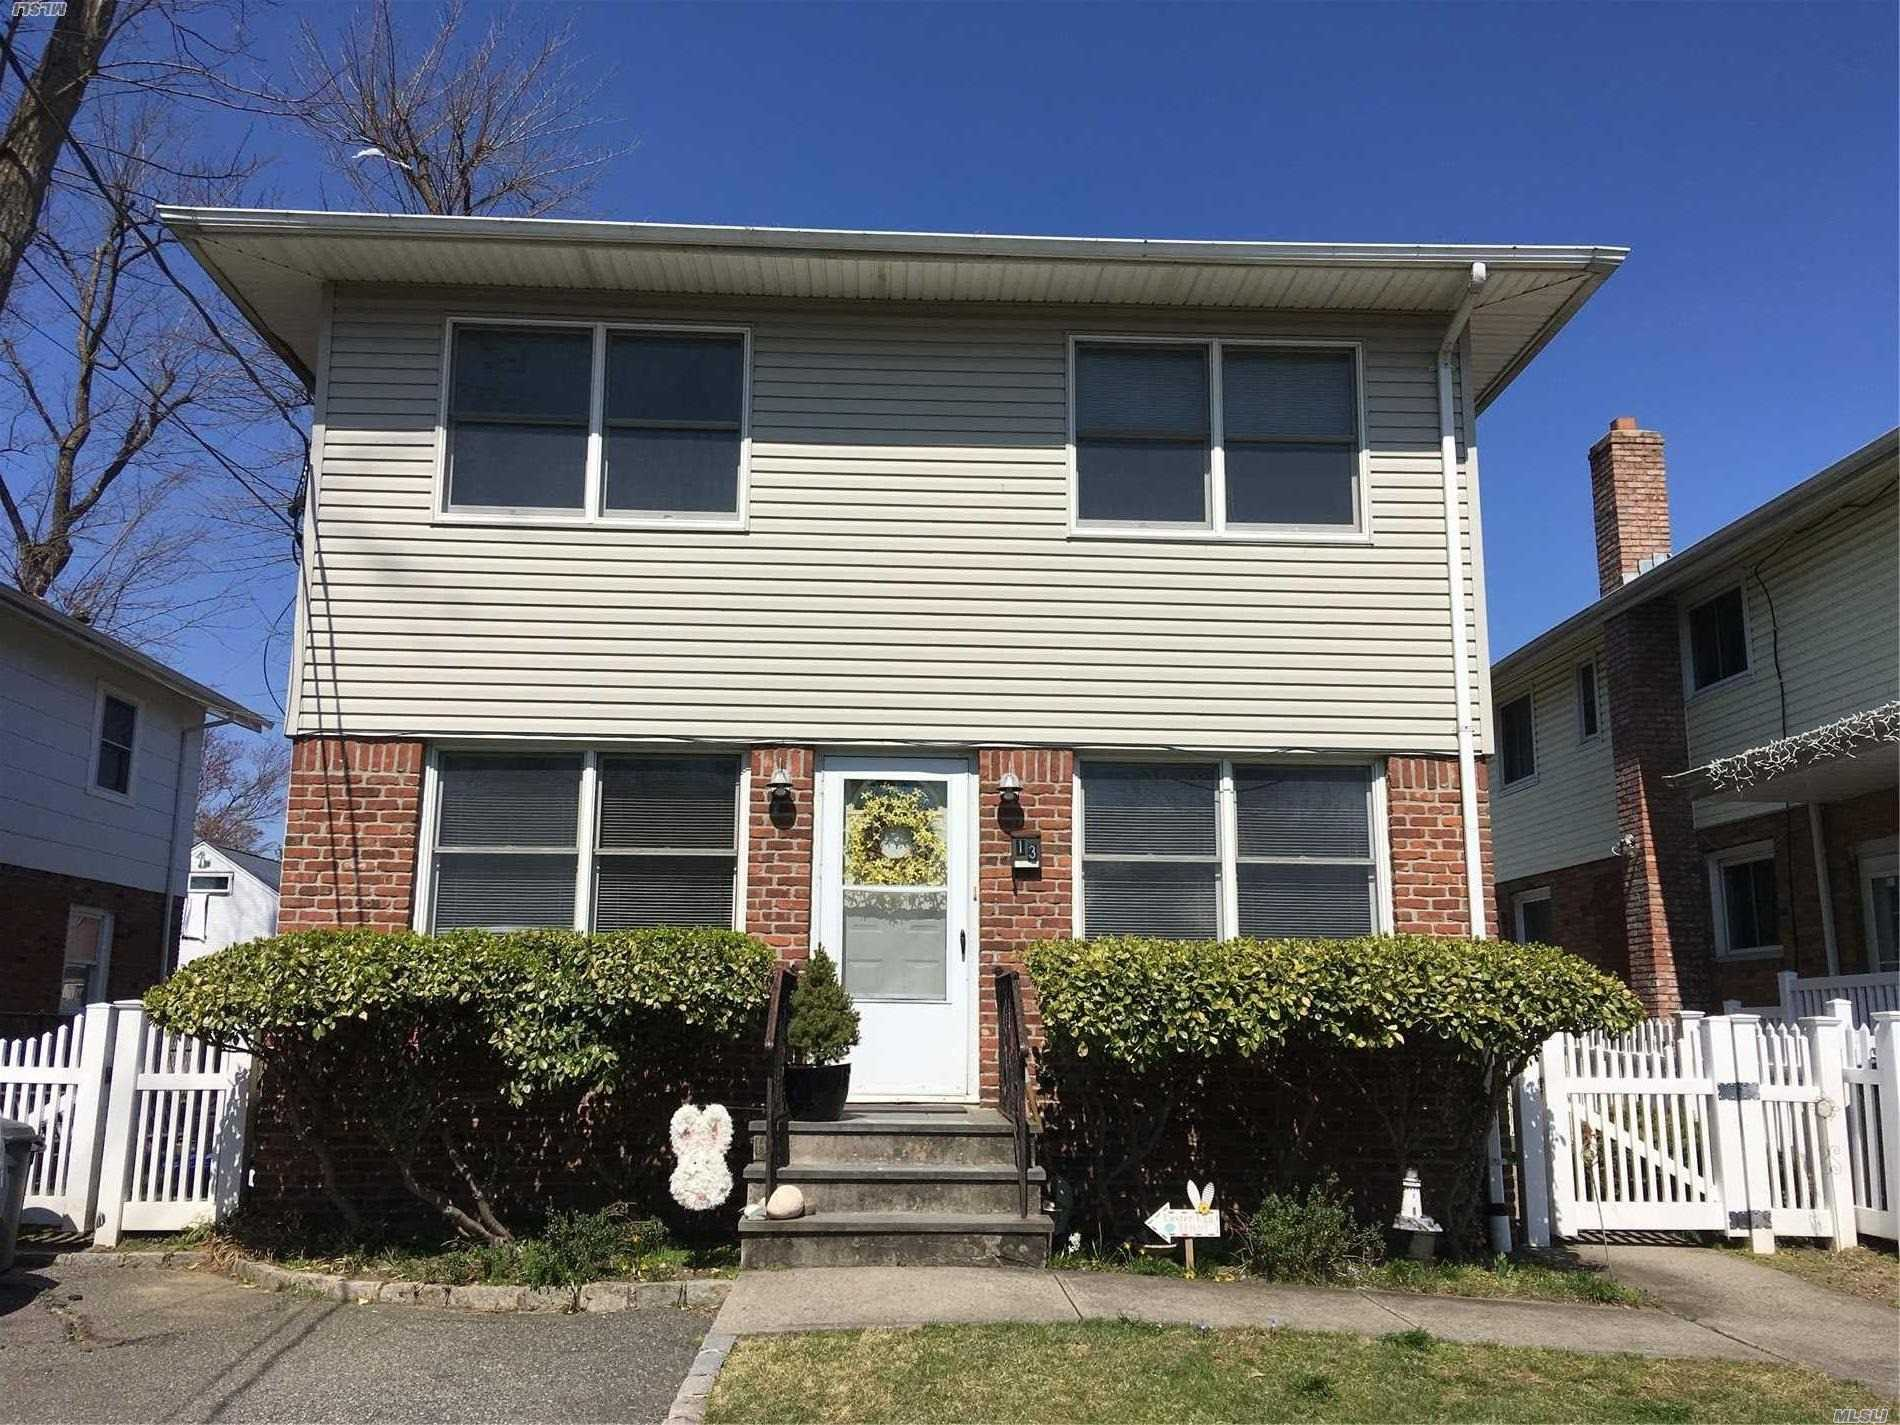 Second Floor 2 Bedroom Apartment on Quiet Residential Street in Manhasset Isle. Laundry/Storage Rm in Basement; Shared Backyard.